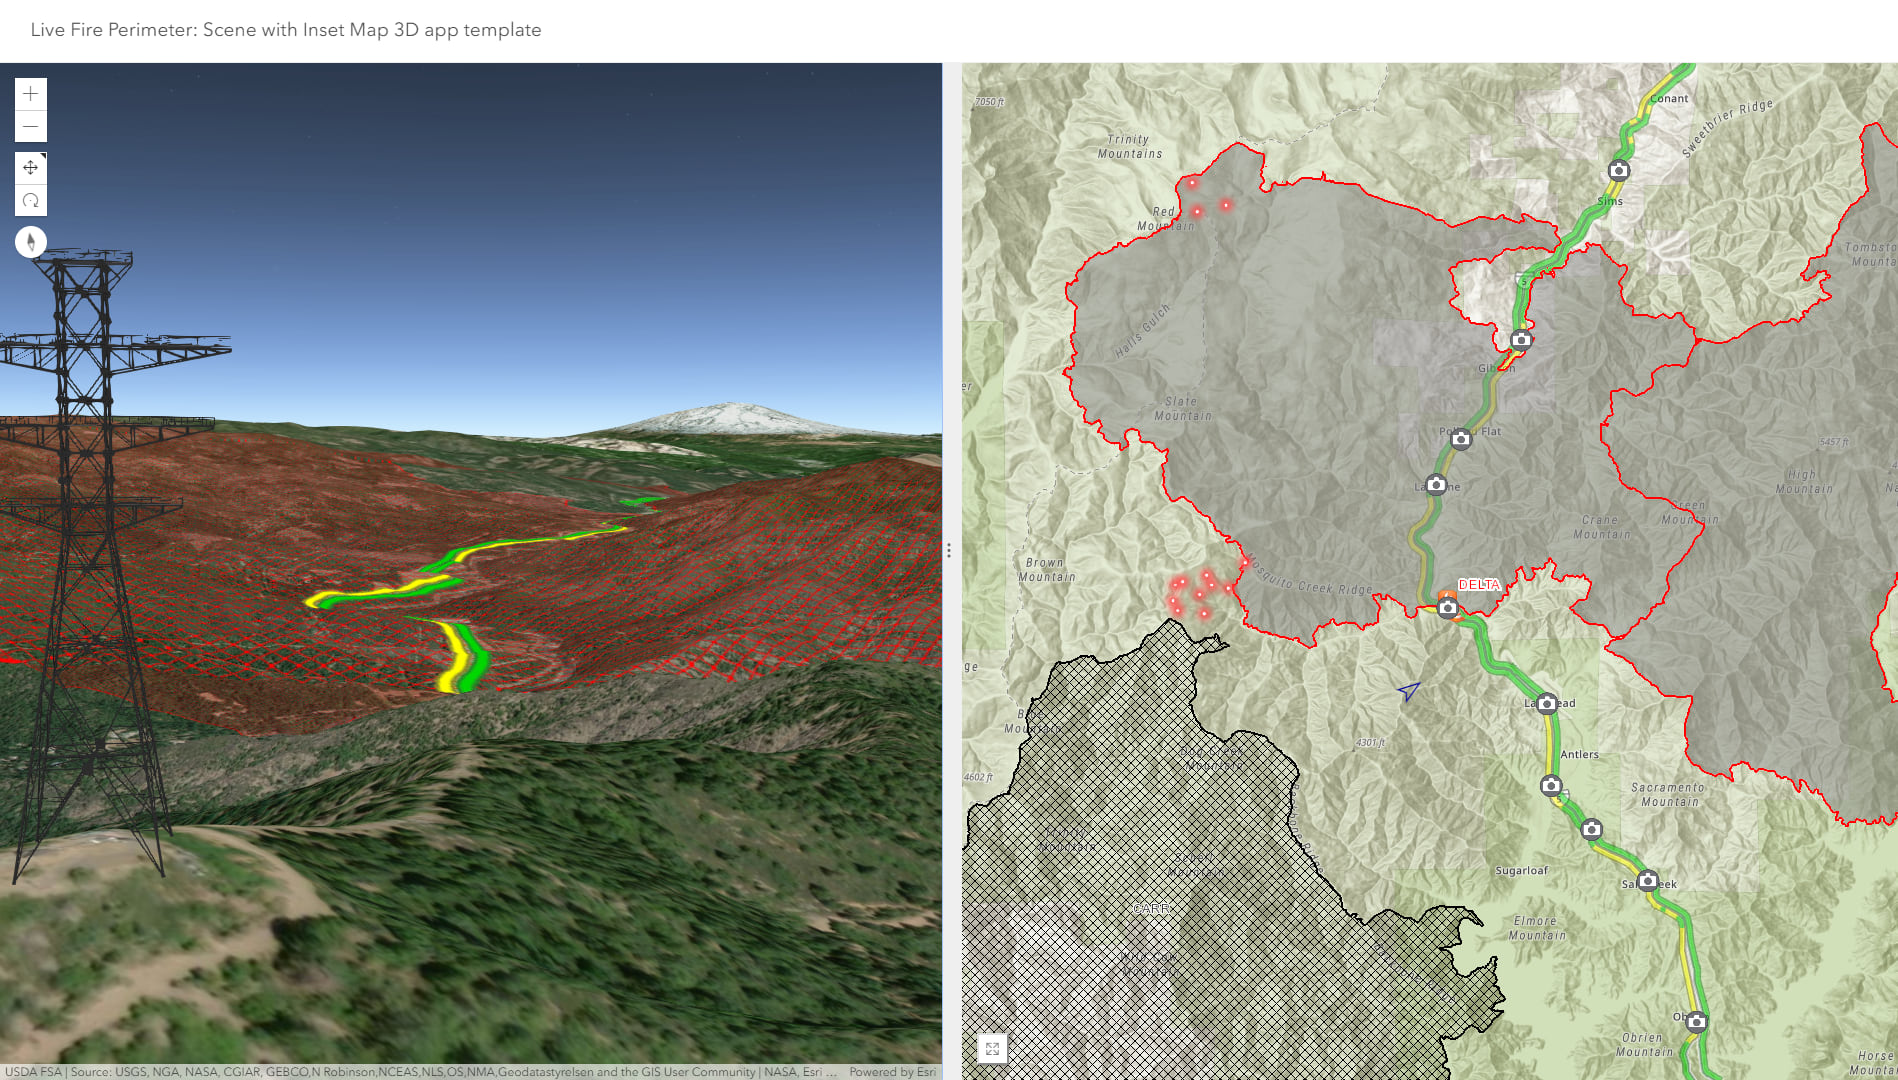 New 3D Web App Template: Scene with Inset Map